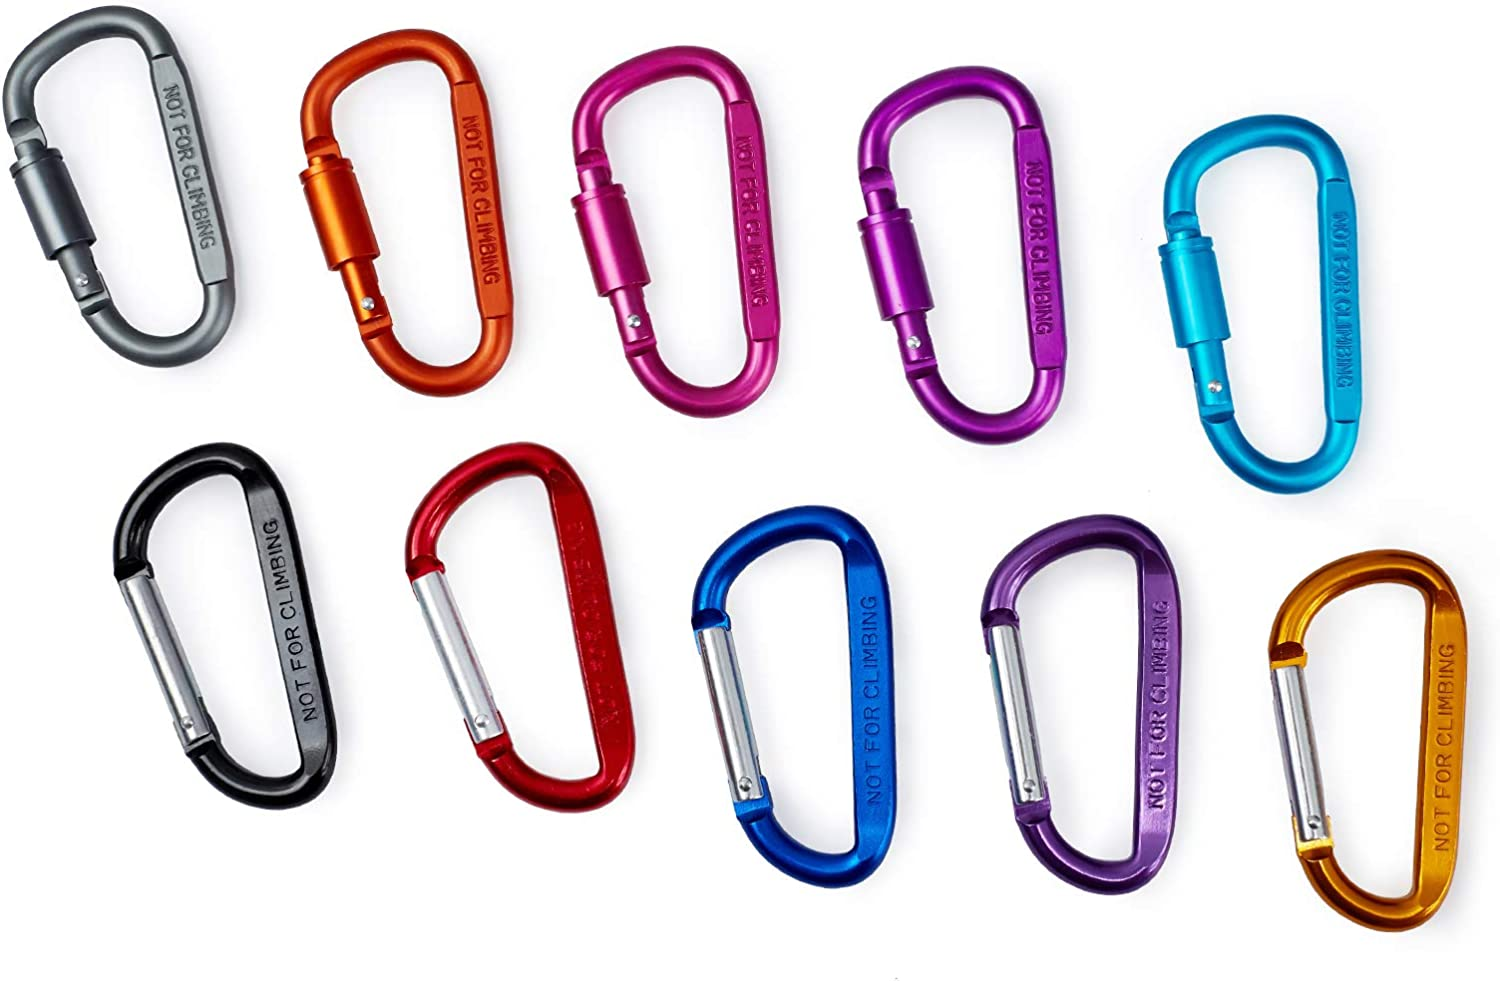 Keychain Clip MODENGKONGJIAN Aluminum Carabiner D Shape Buckle Pack 10 PCS Camping Climbing Hiking Keychain Spring Snap Hook Screw Gate Buckle 3 D-Ring Locking Key